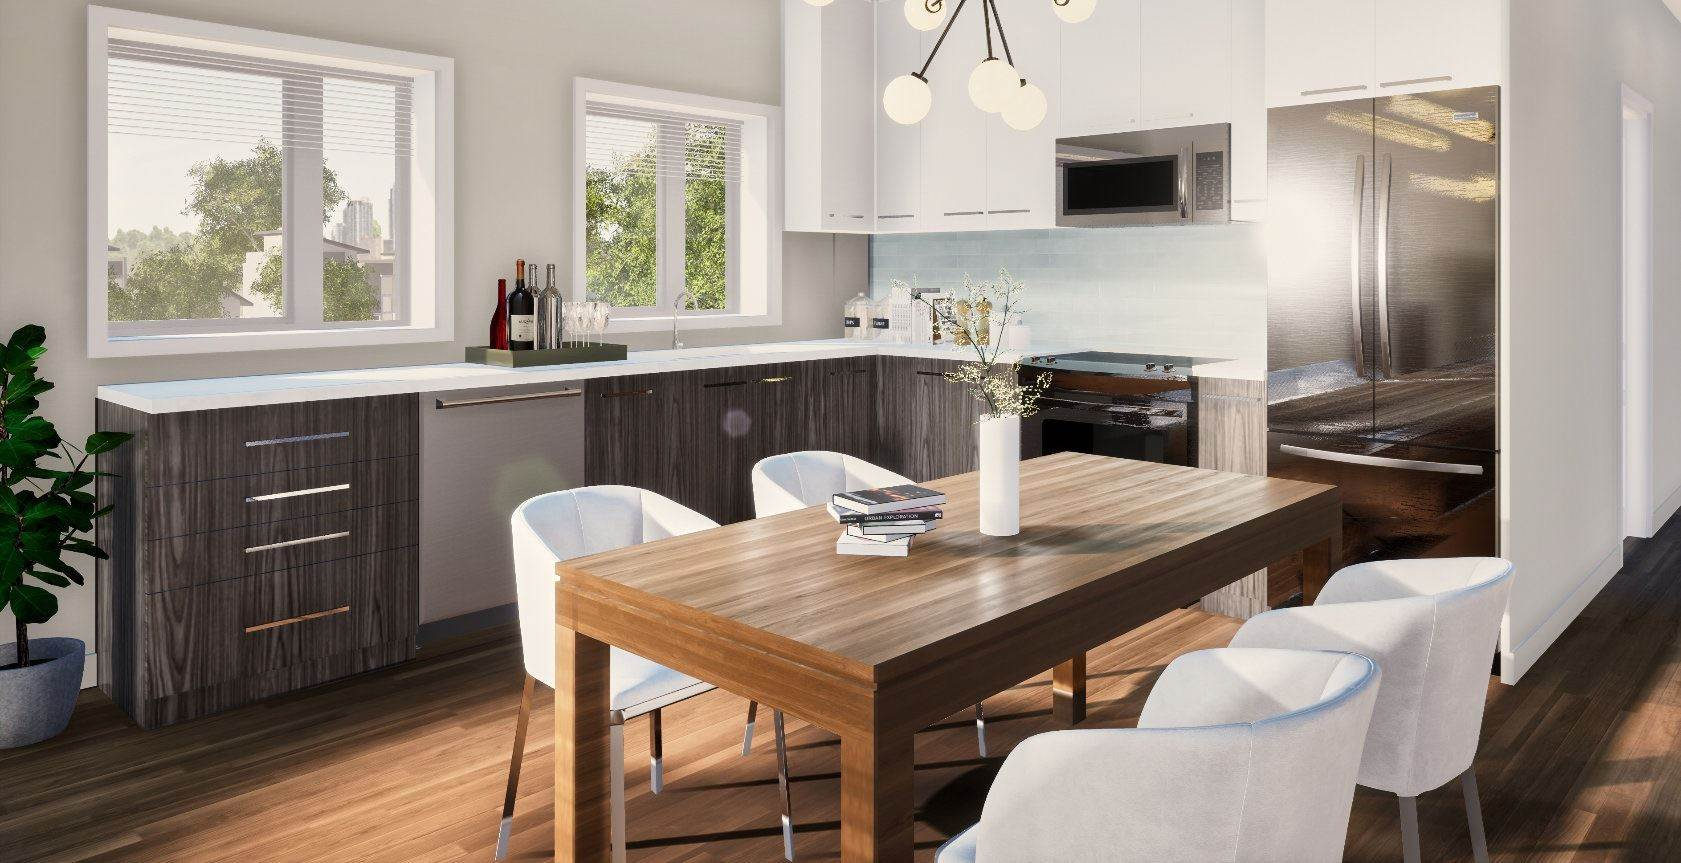 2020_11_02_12_11_30_victoriagarden_95development_rendering_kitchen